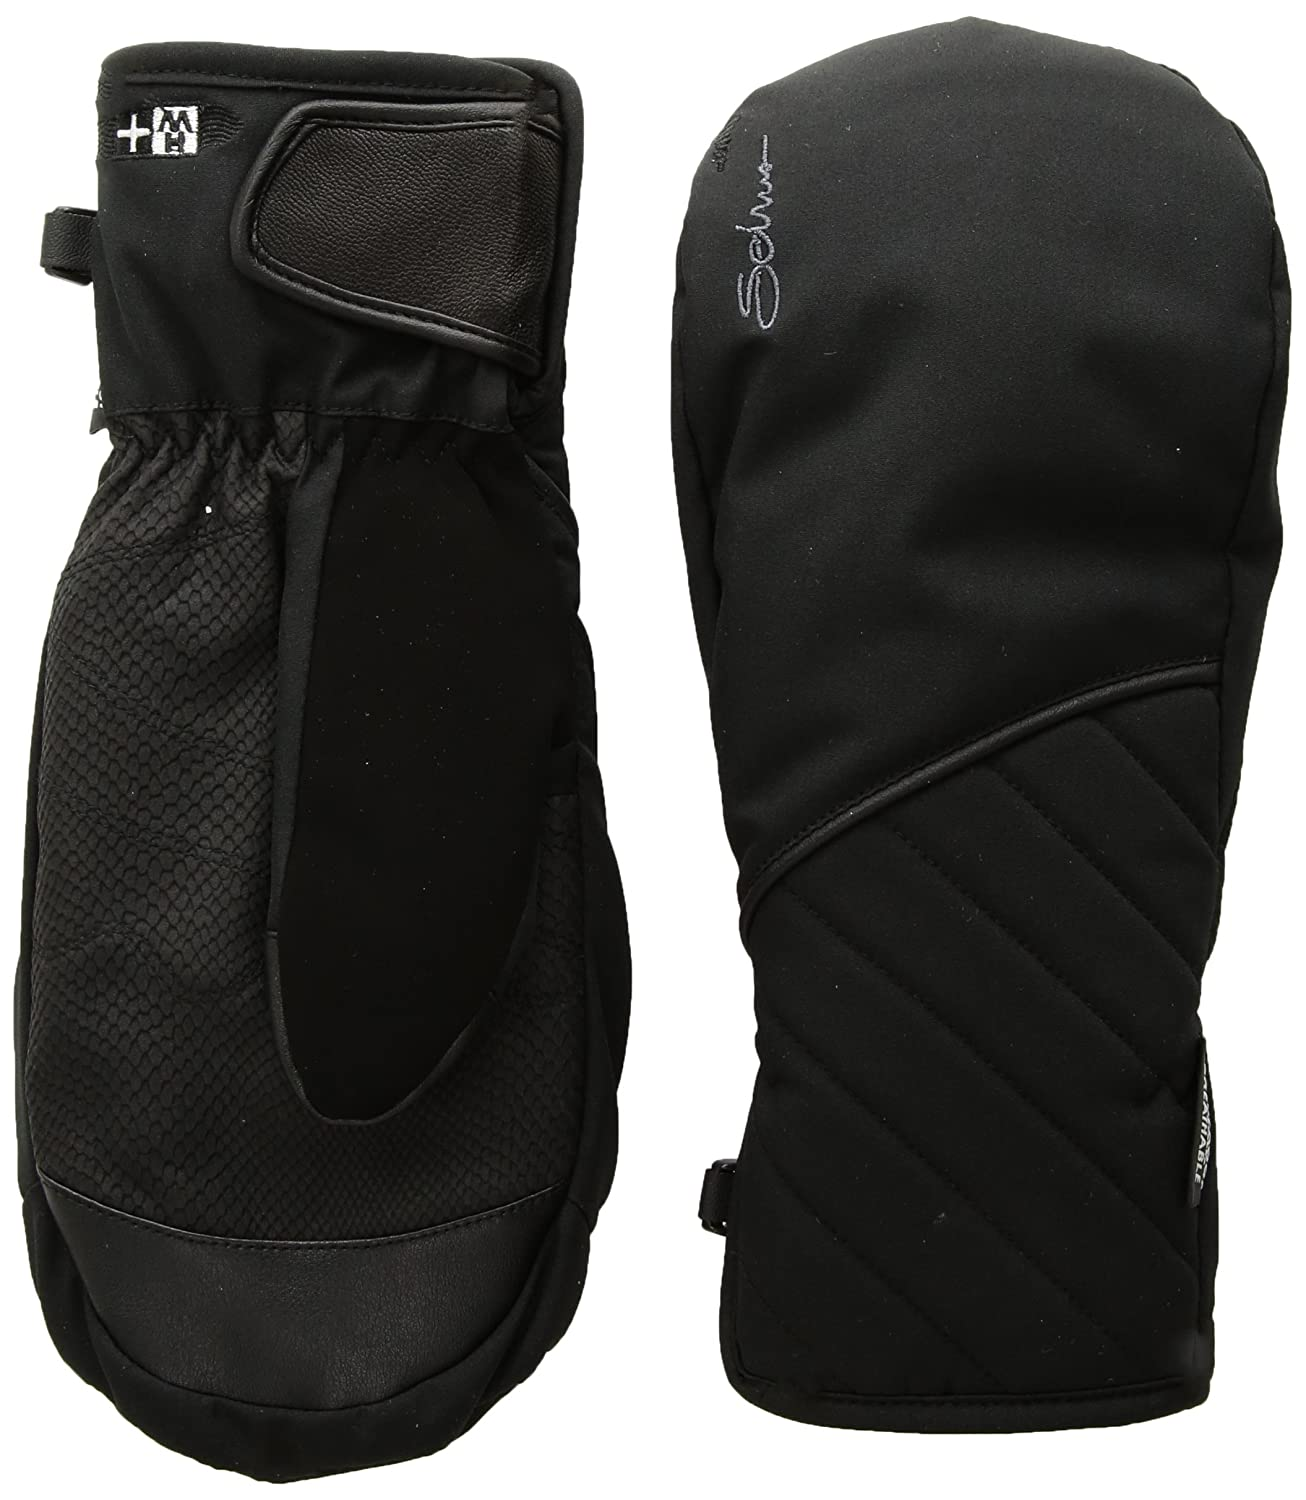 Black Medium Seirus Innovation St Heatwave Plus Vanish Mitt